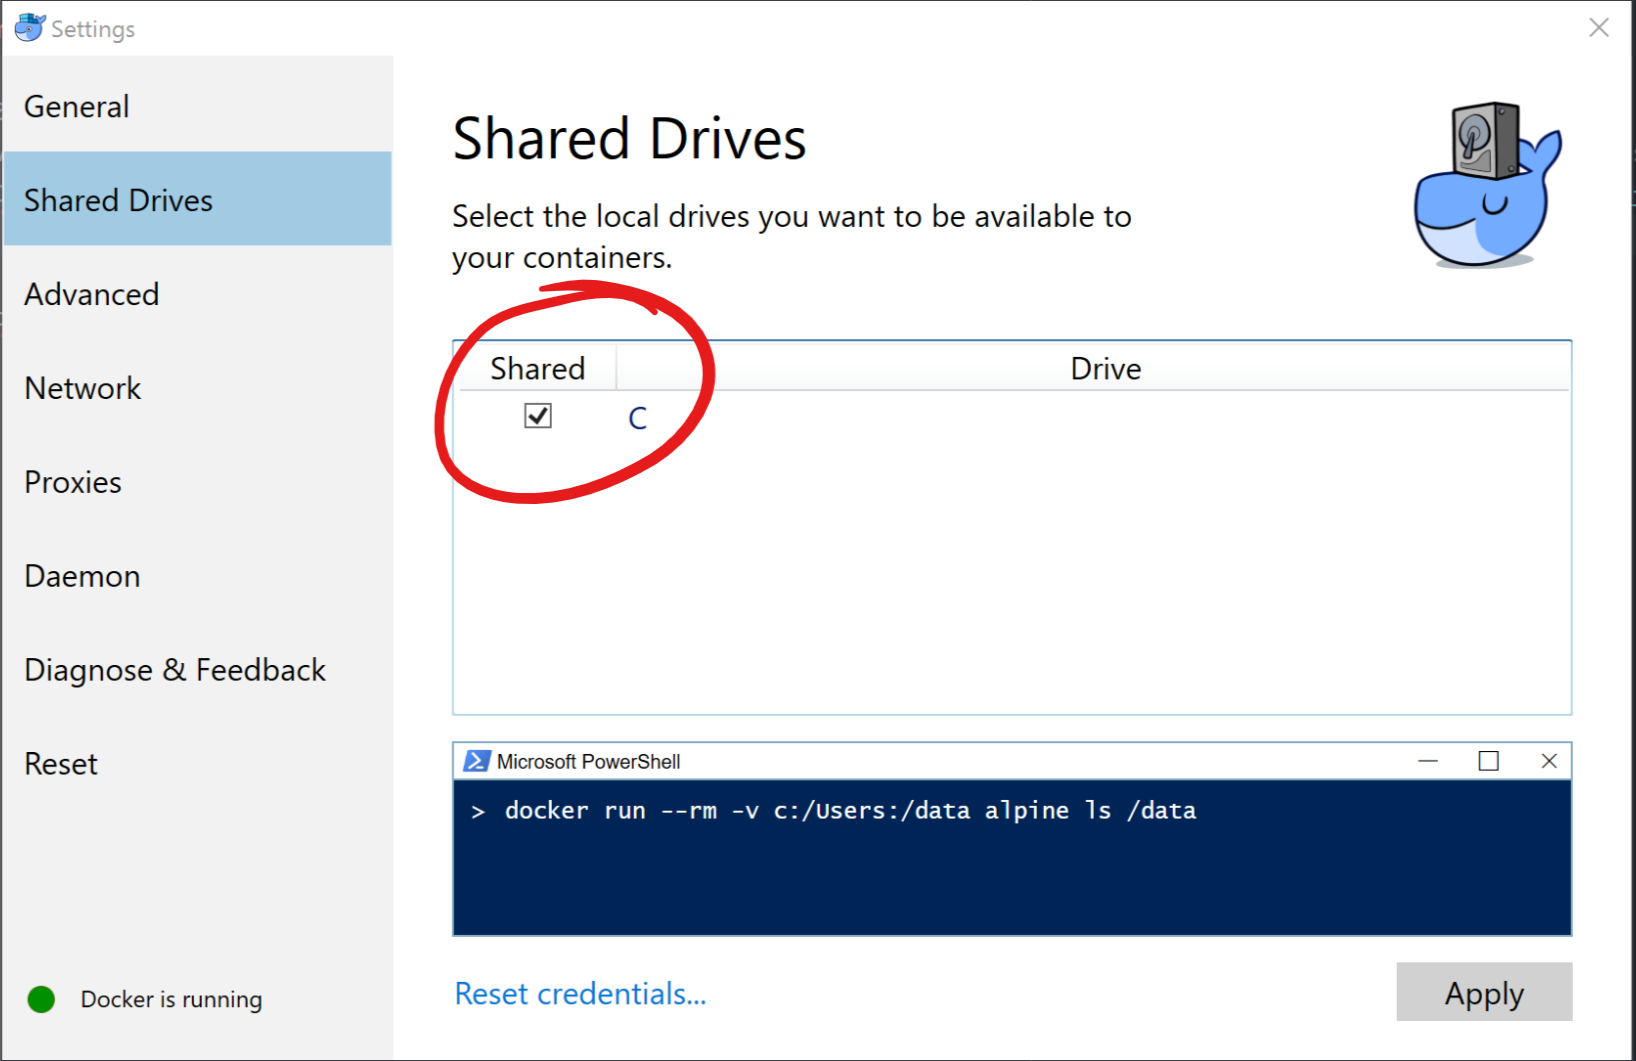 Shared Drives